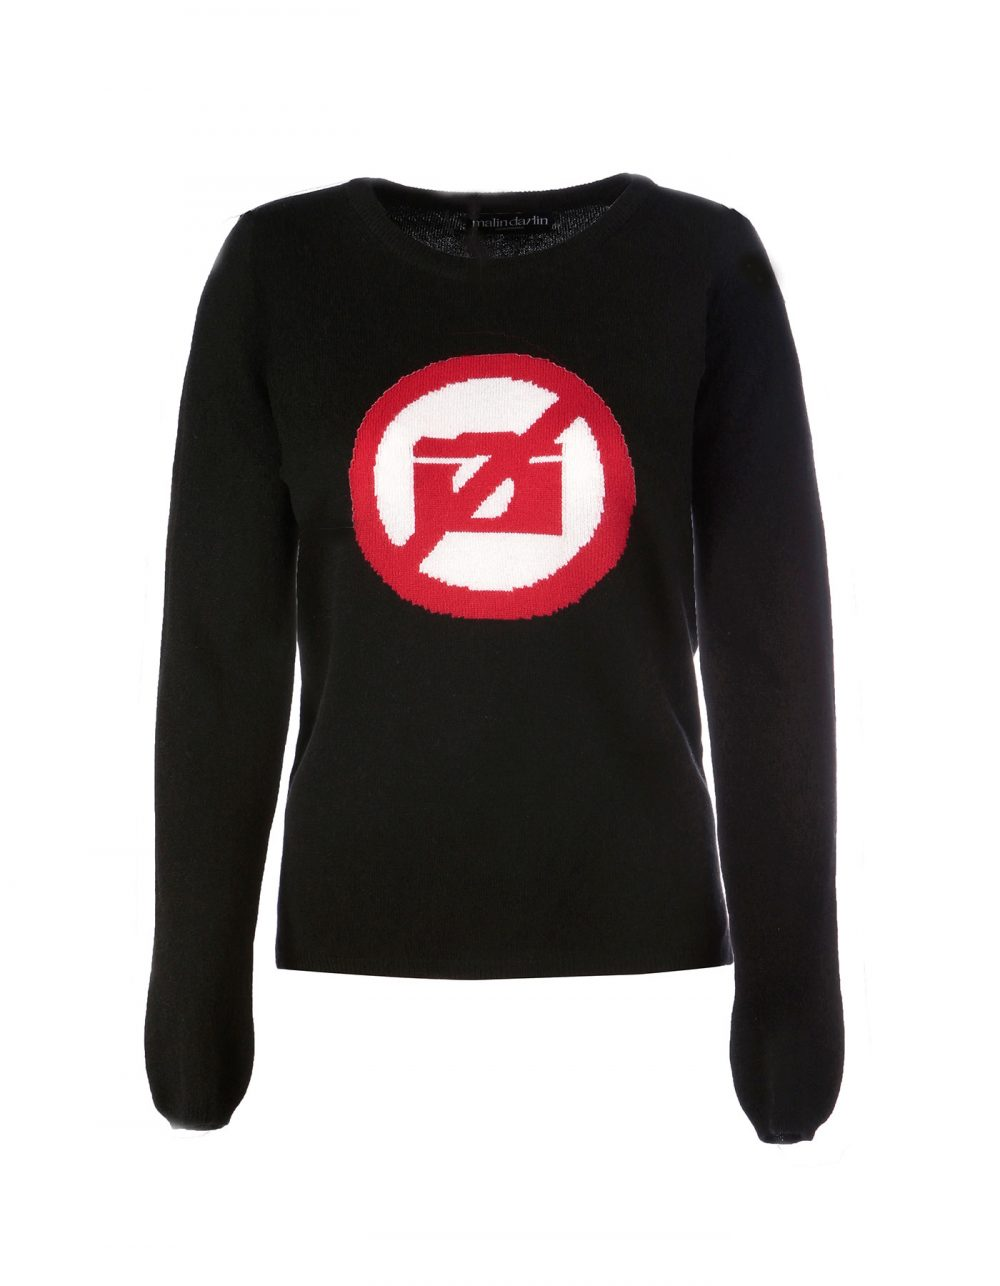 Malin darlin designer cashmere, the No Photos black cashmere jumper, laid flat on a white background.